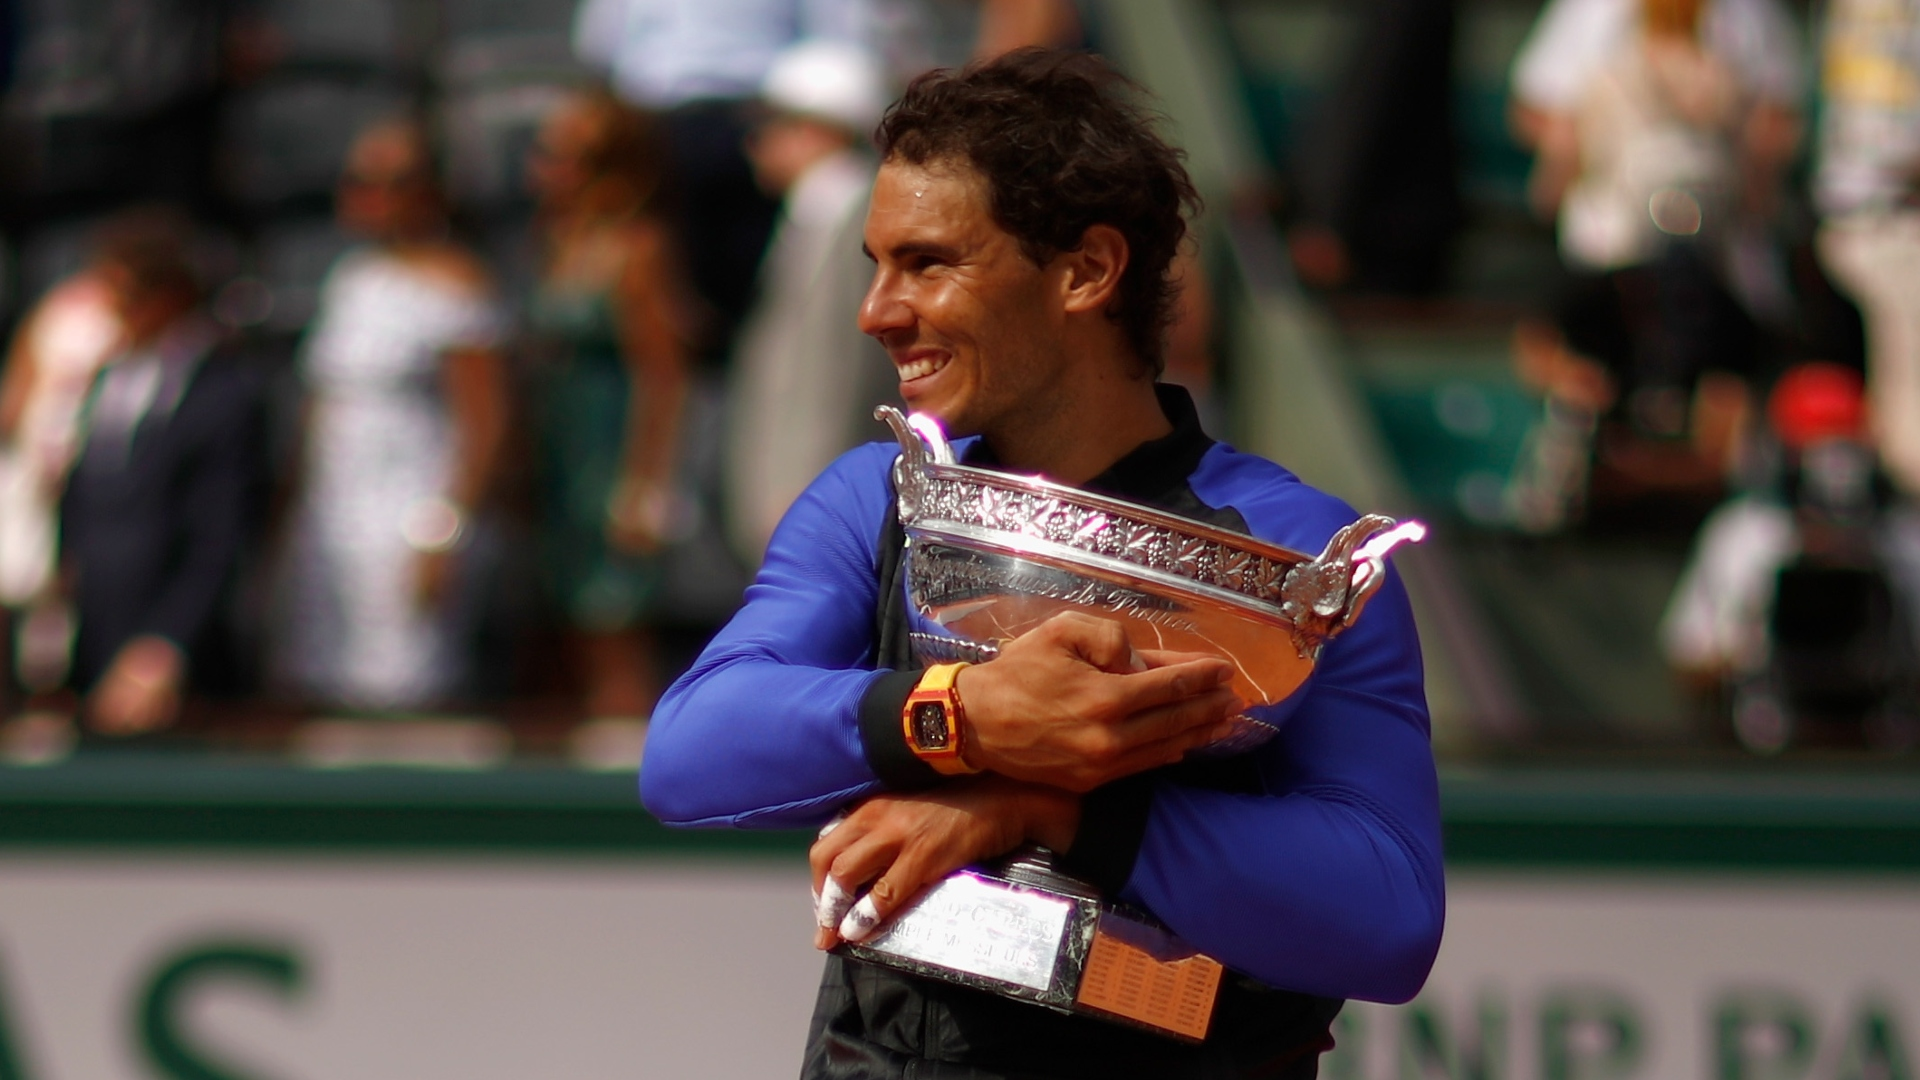 On this day in sport: Nadal's 10th French Open and Tyson's final fight... probably